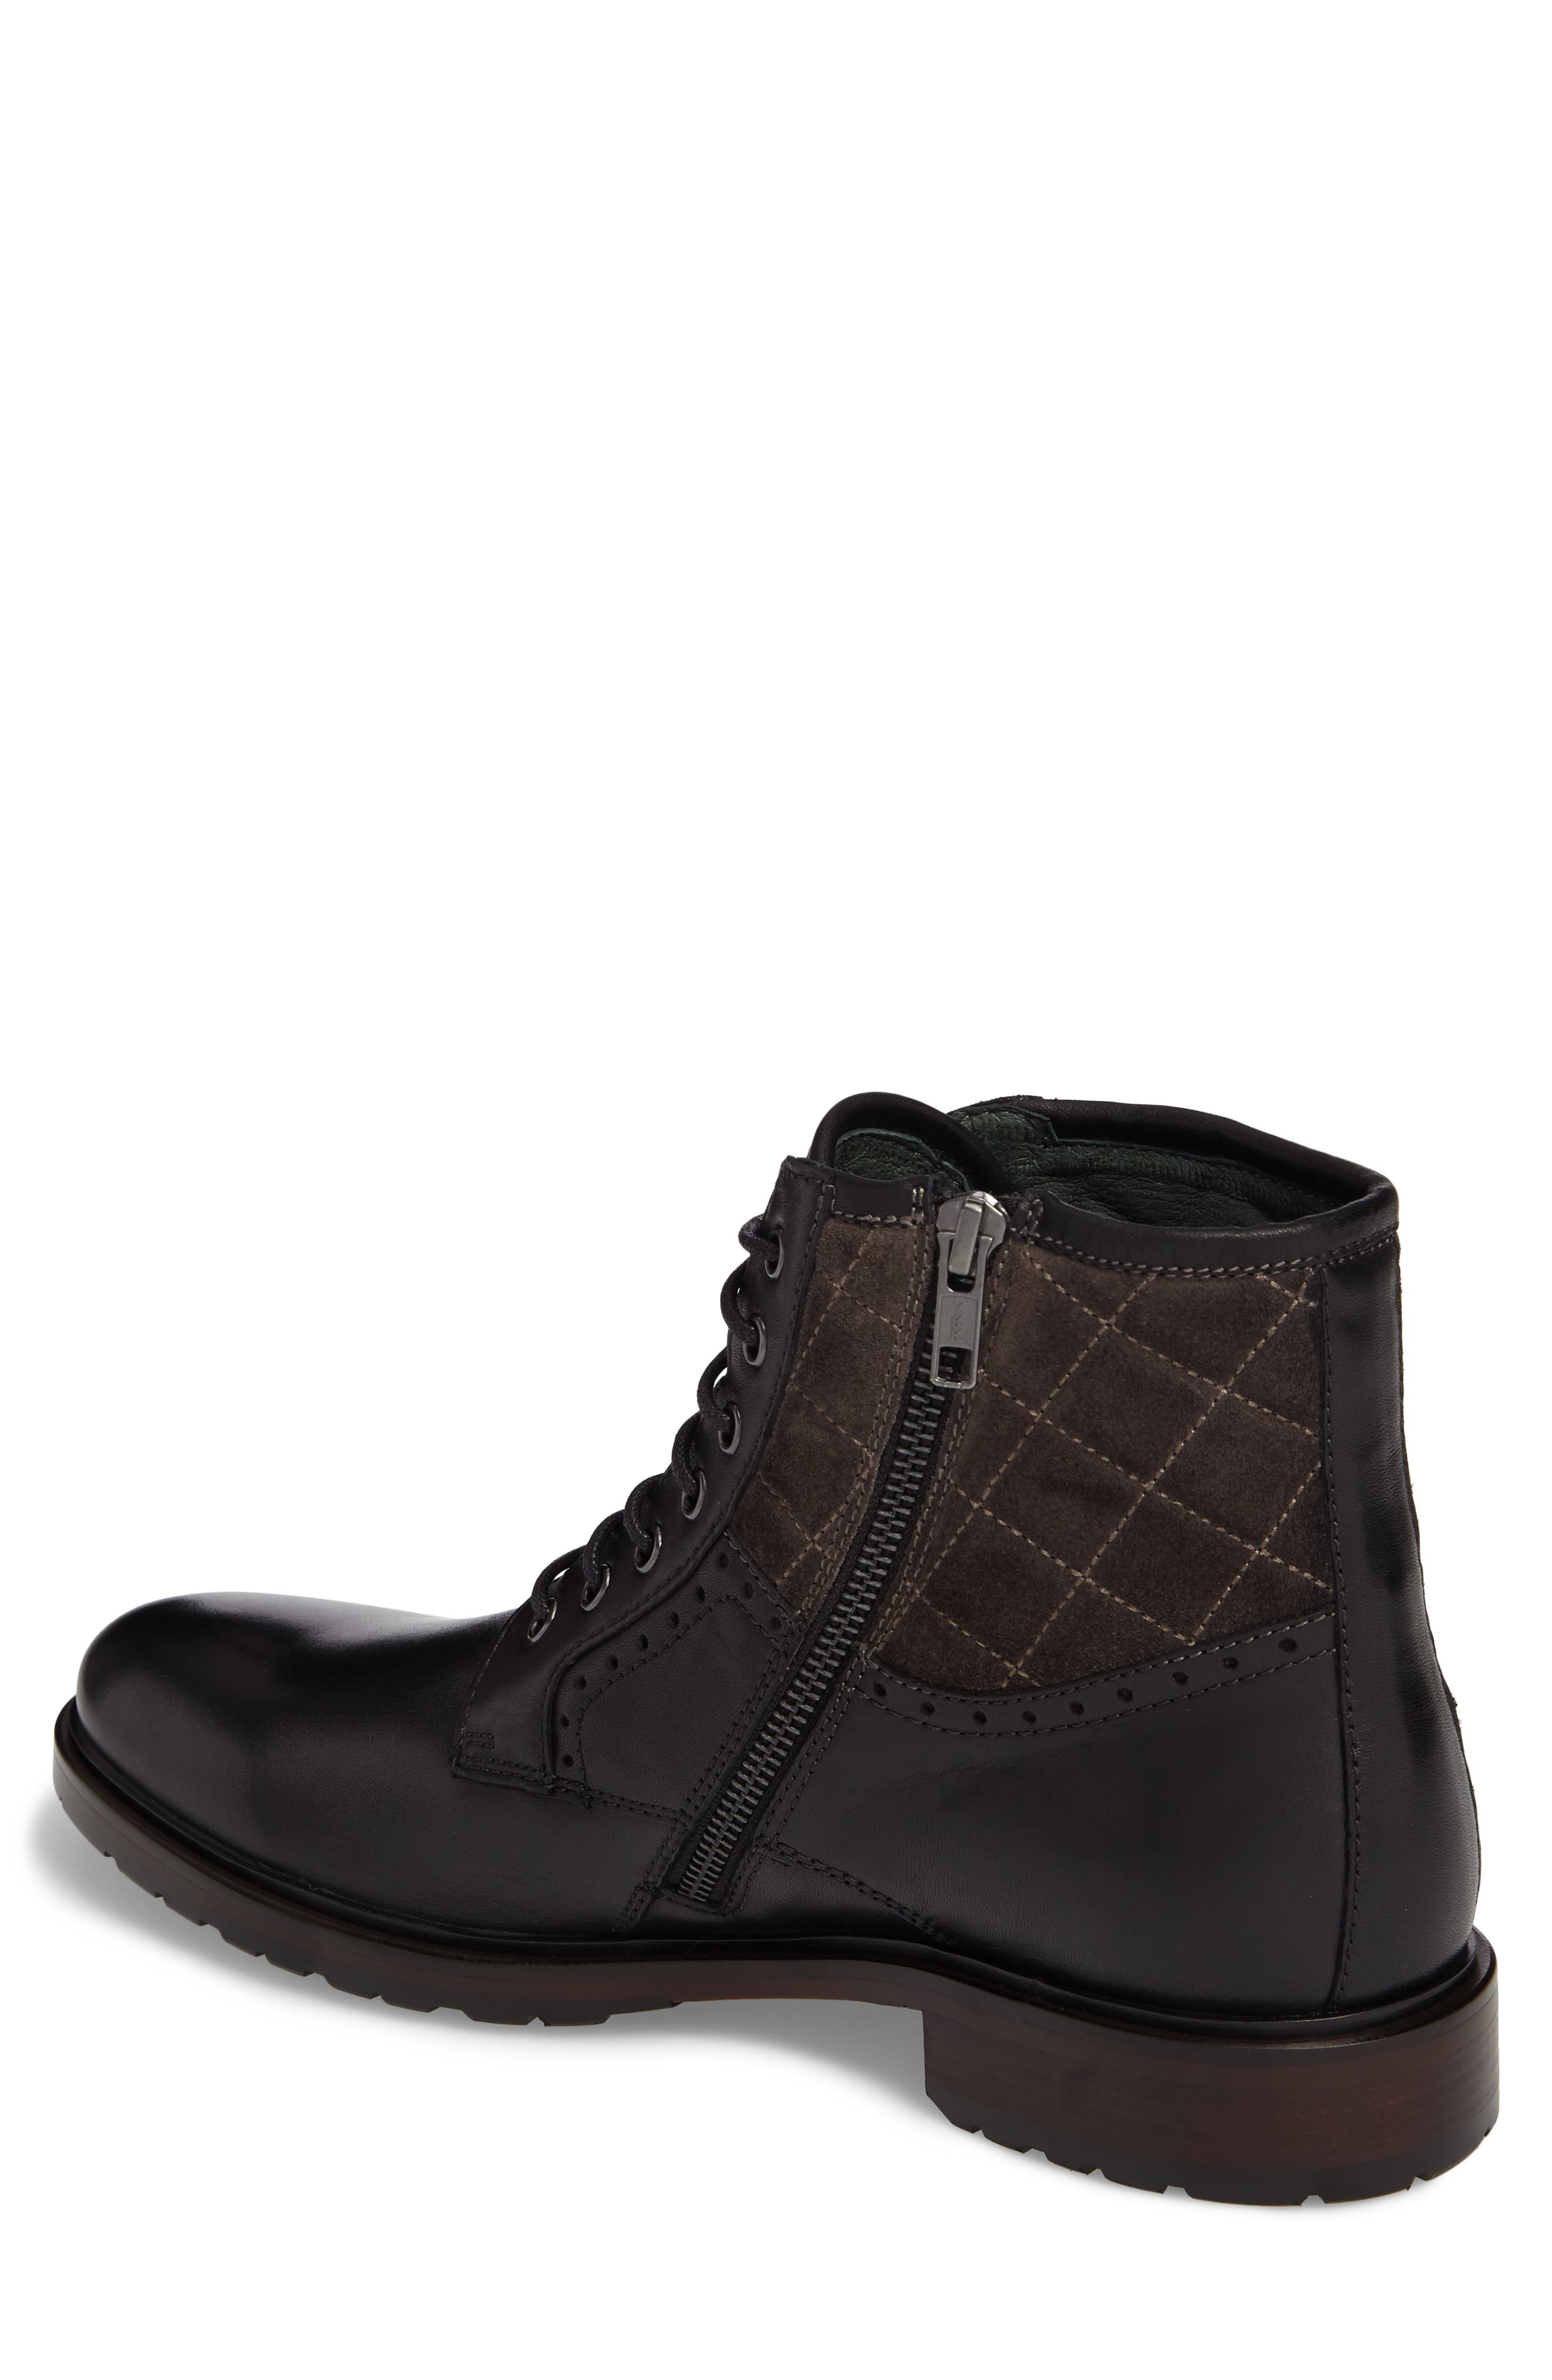 Myles Plain Toe Boot,                             Alternate thumbnail 3, color,